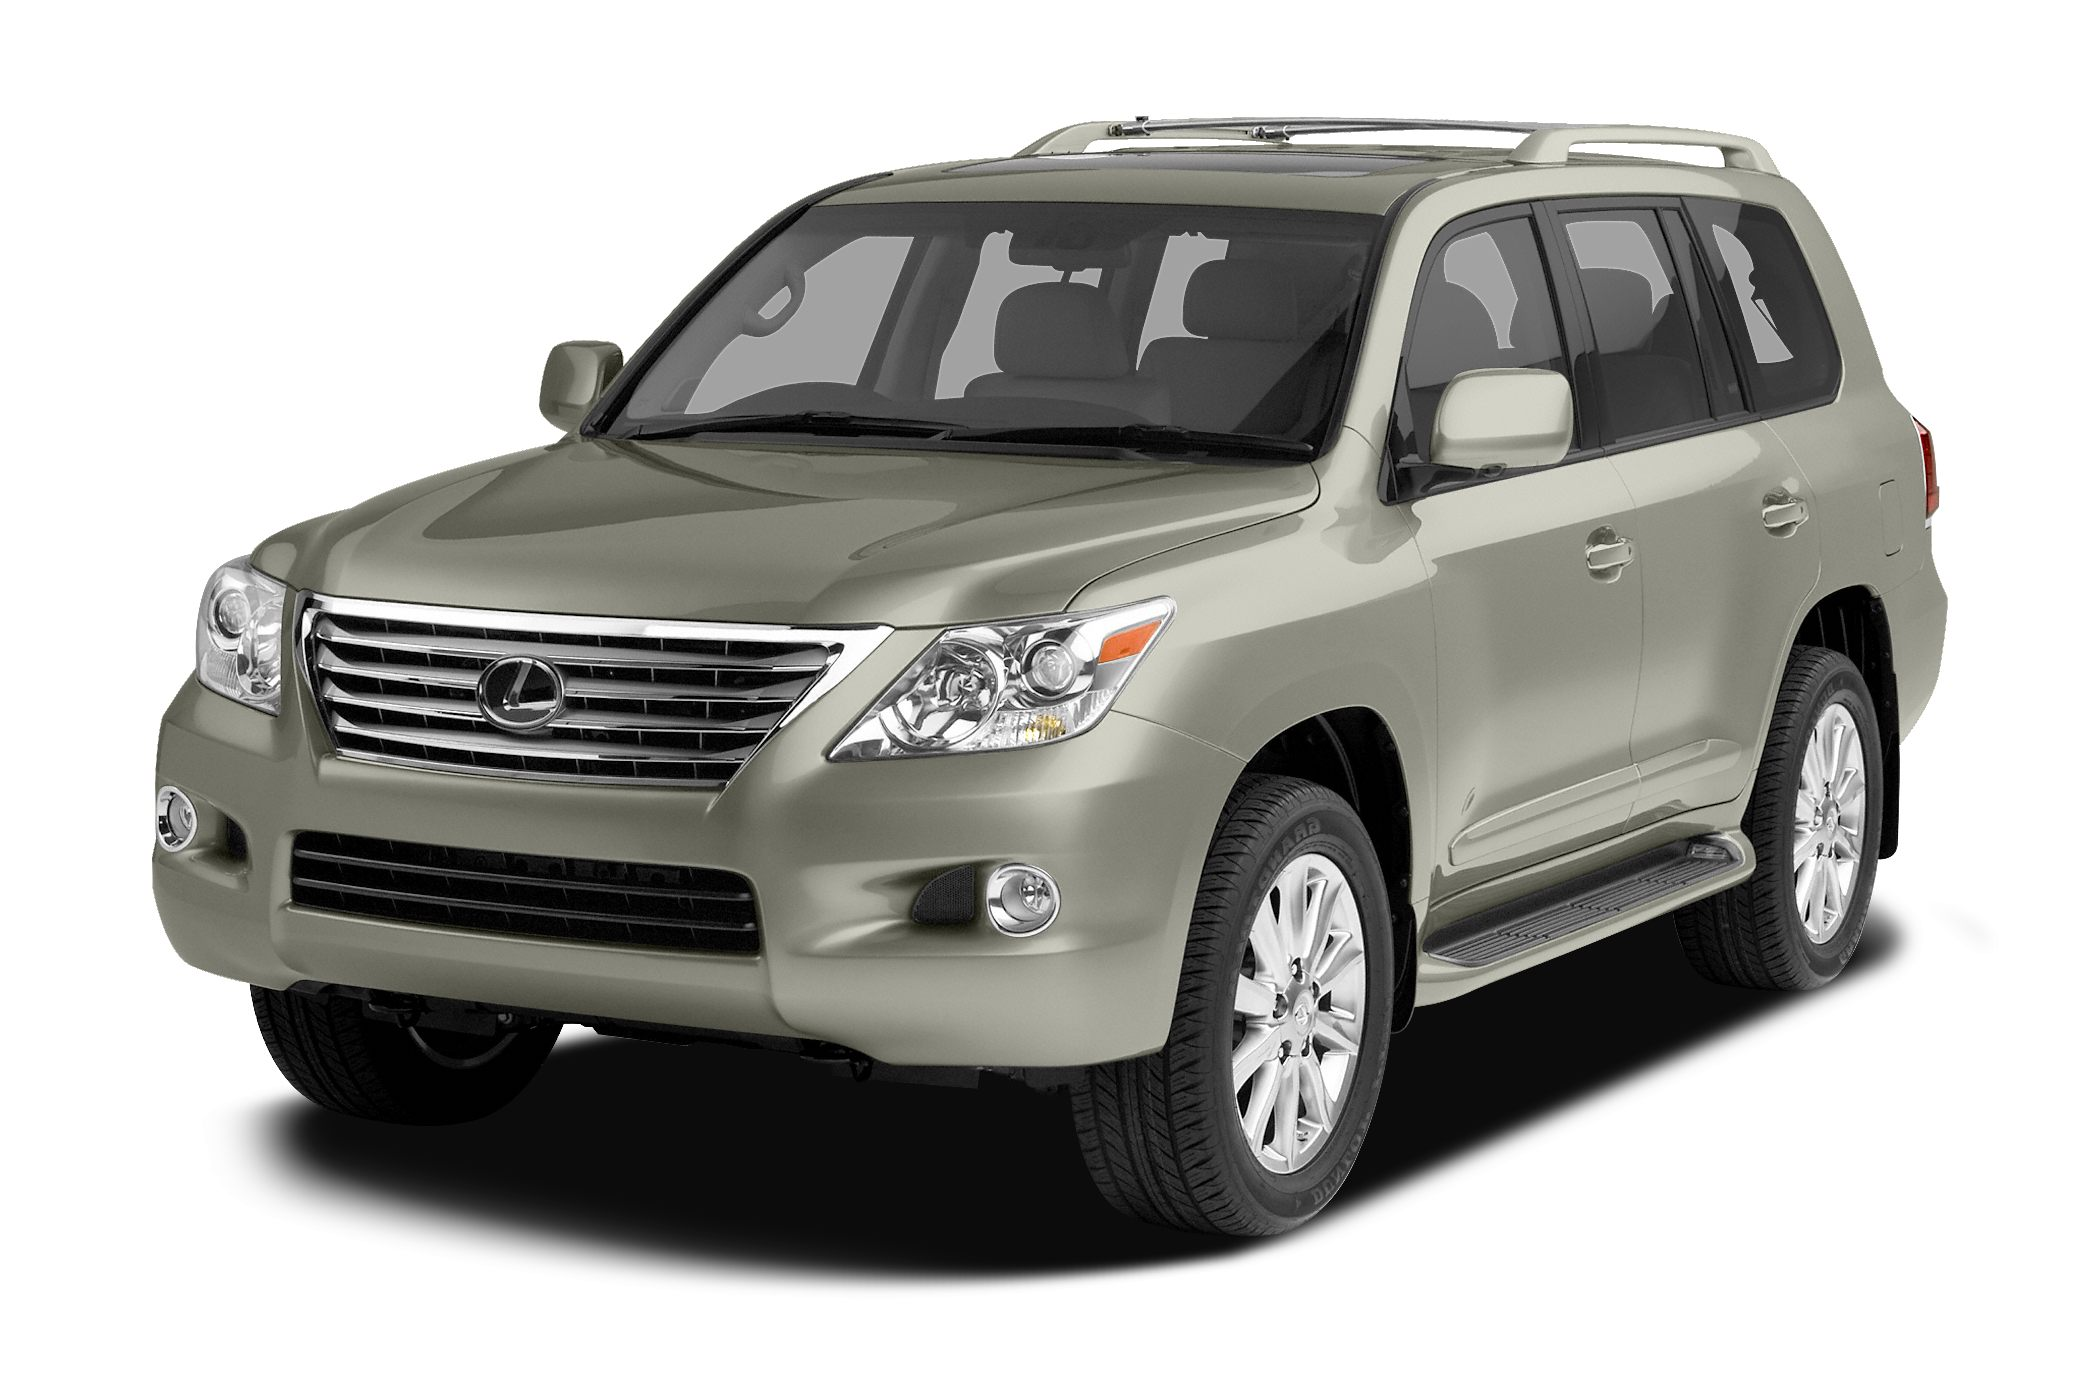 CAC00LES131A0101 Take A Look About 2009 Lexus Lx 570 with Fascinating Photos Cars Review